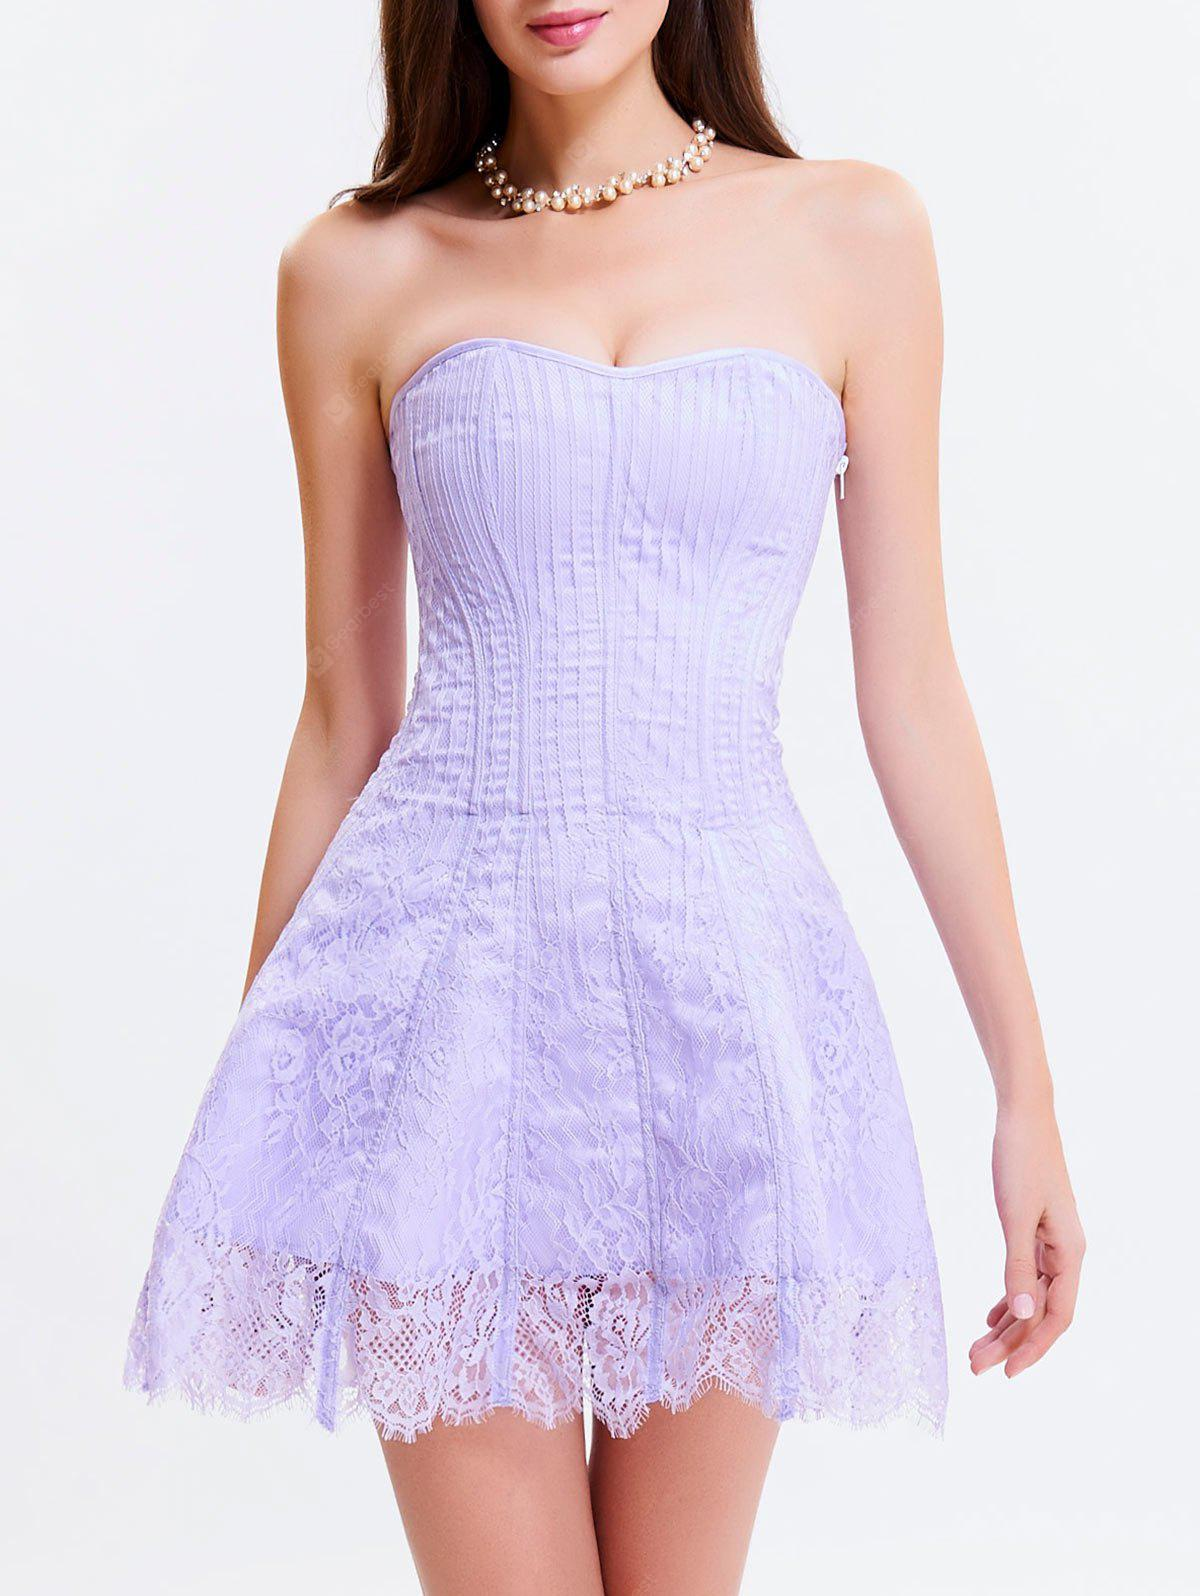 LIGHT PURPLE L Tie Up Zipper Gothic Lace Corset Dress